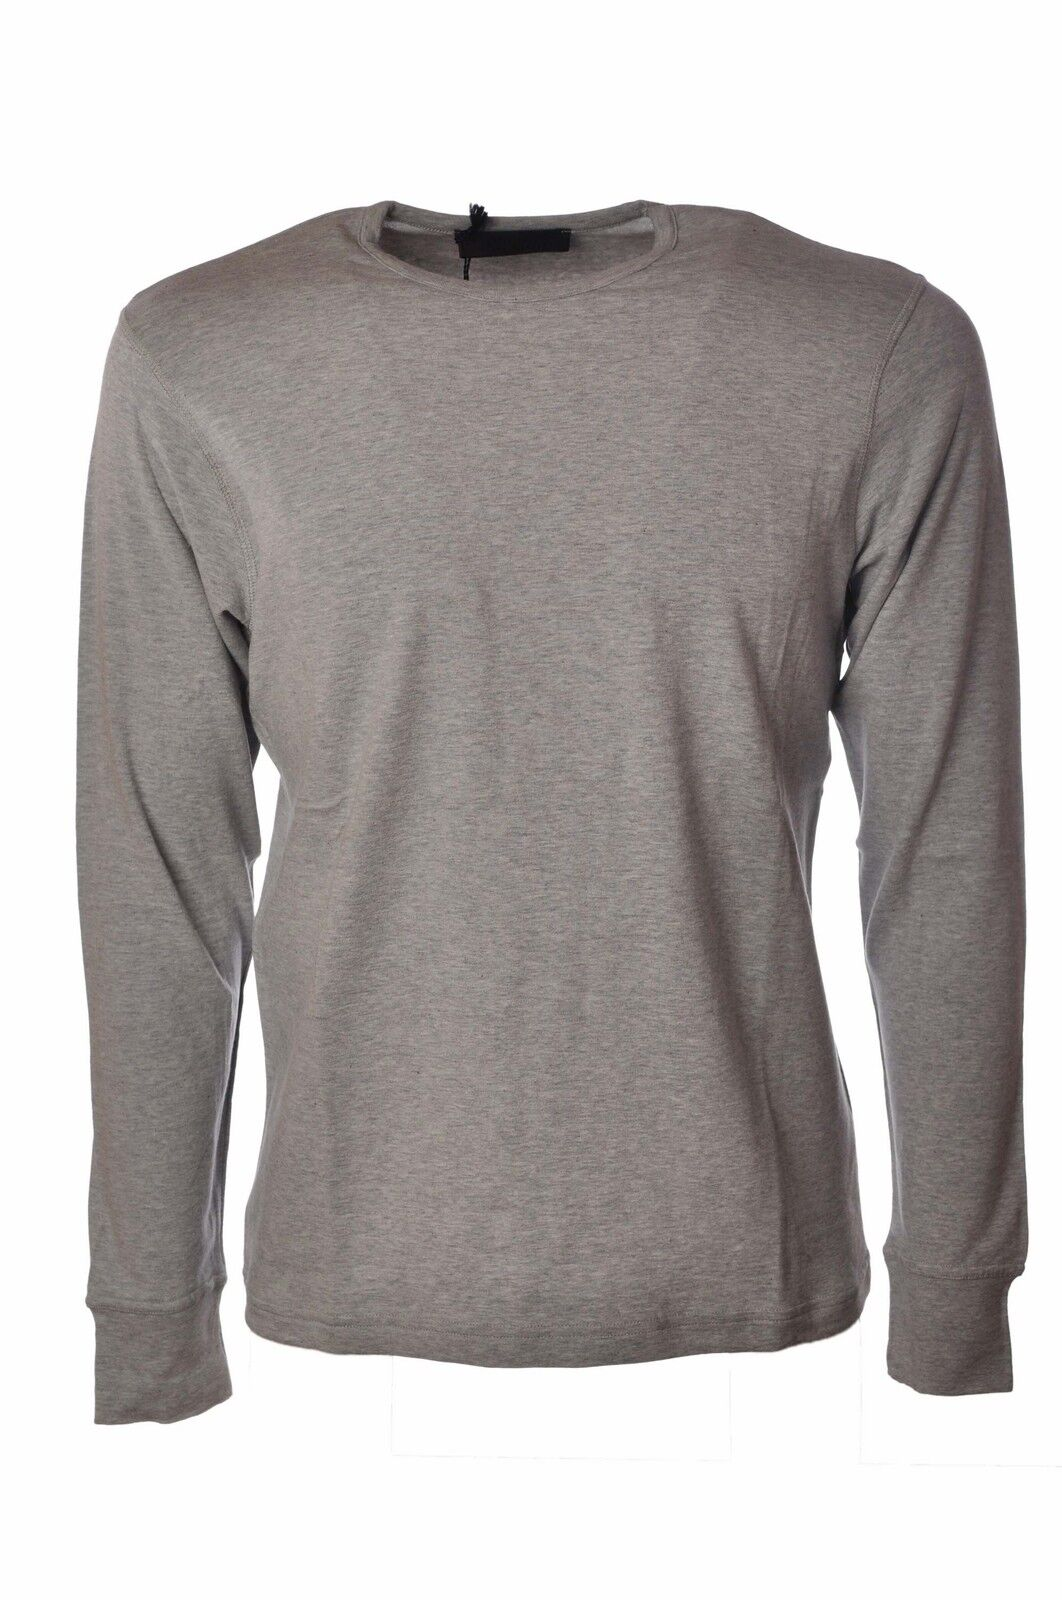 Alpha - Topwear-T-shirts - Man - Grey - 3765022B183904